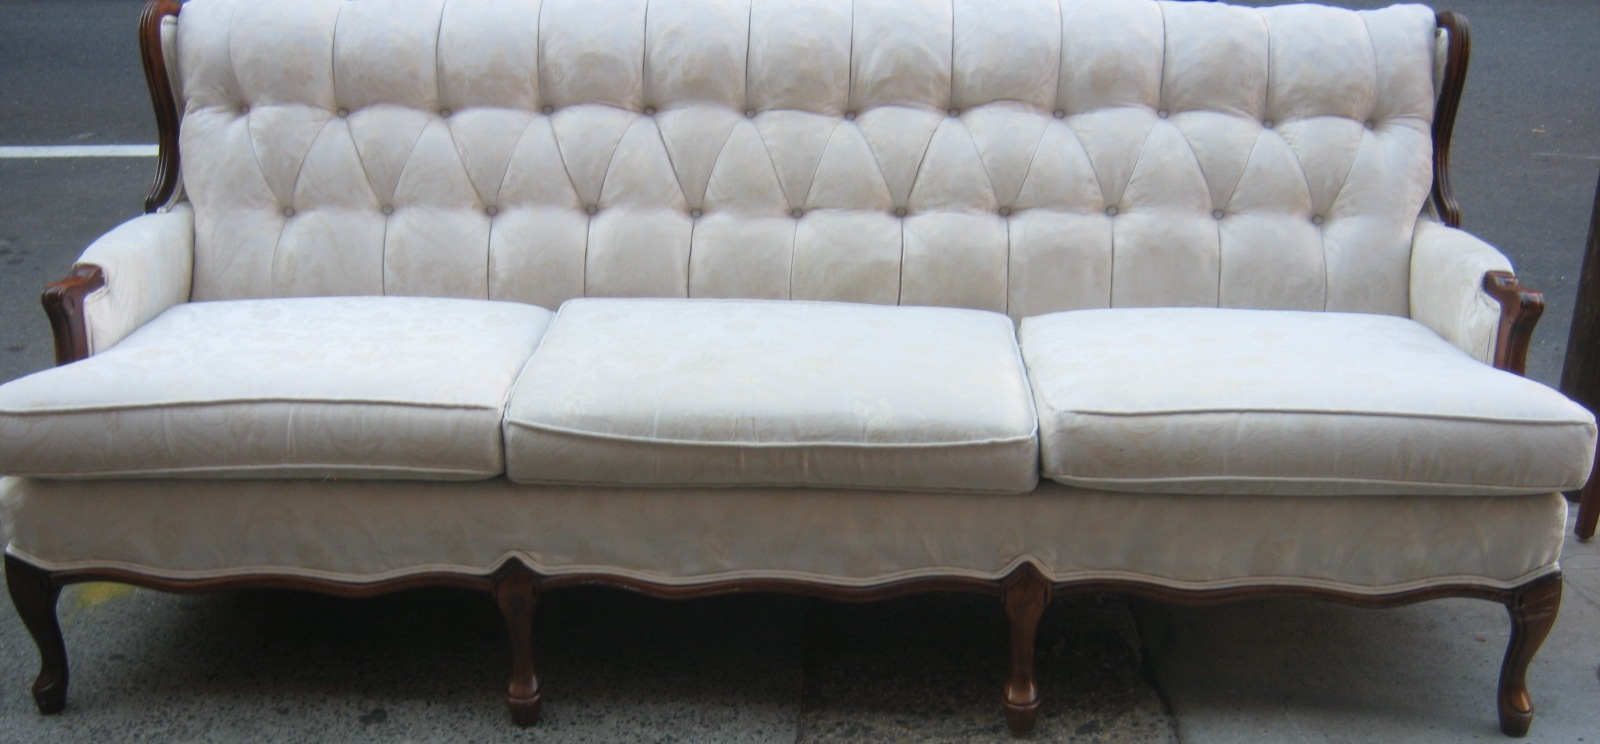 Genial French Provincial Sofa SOLD